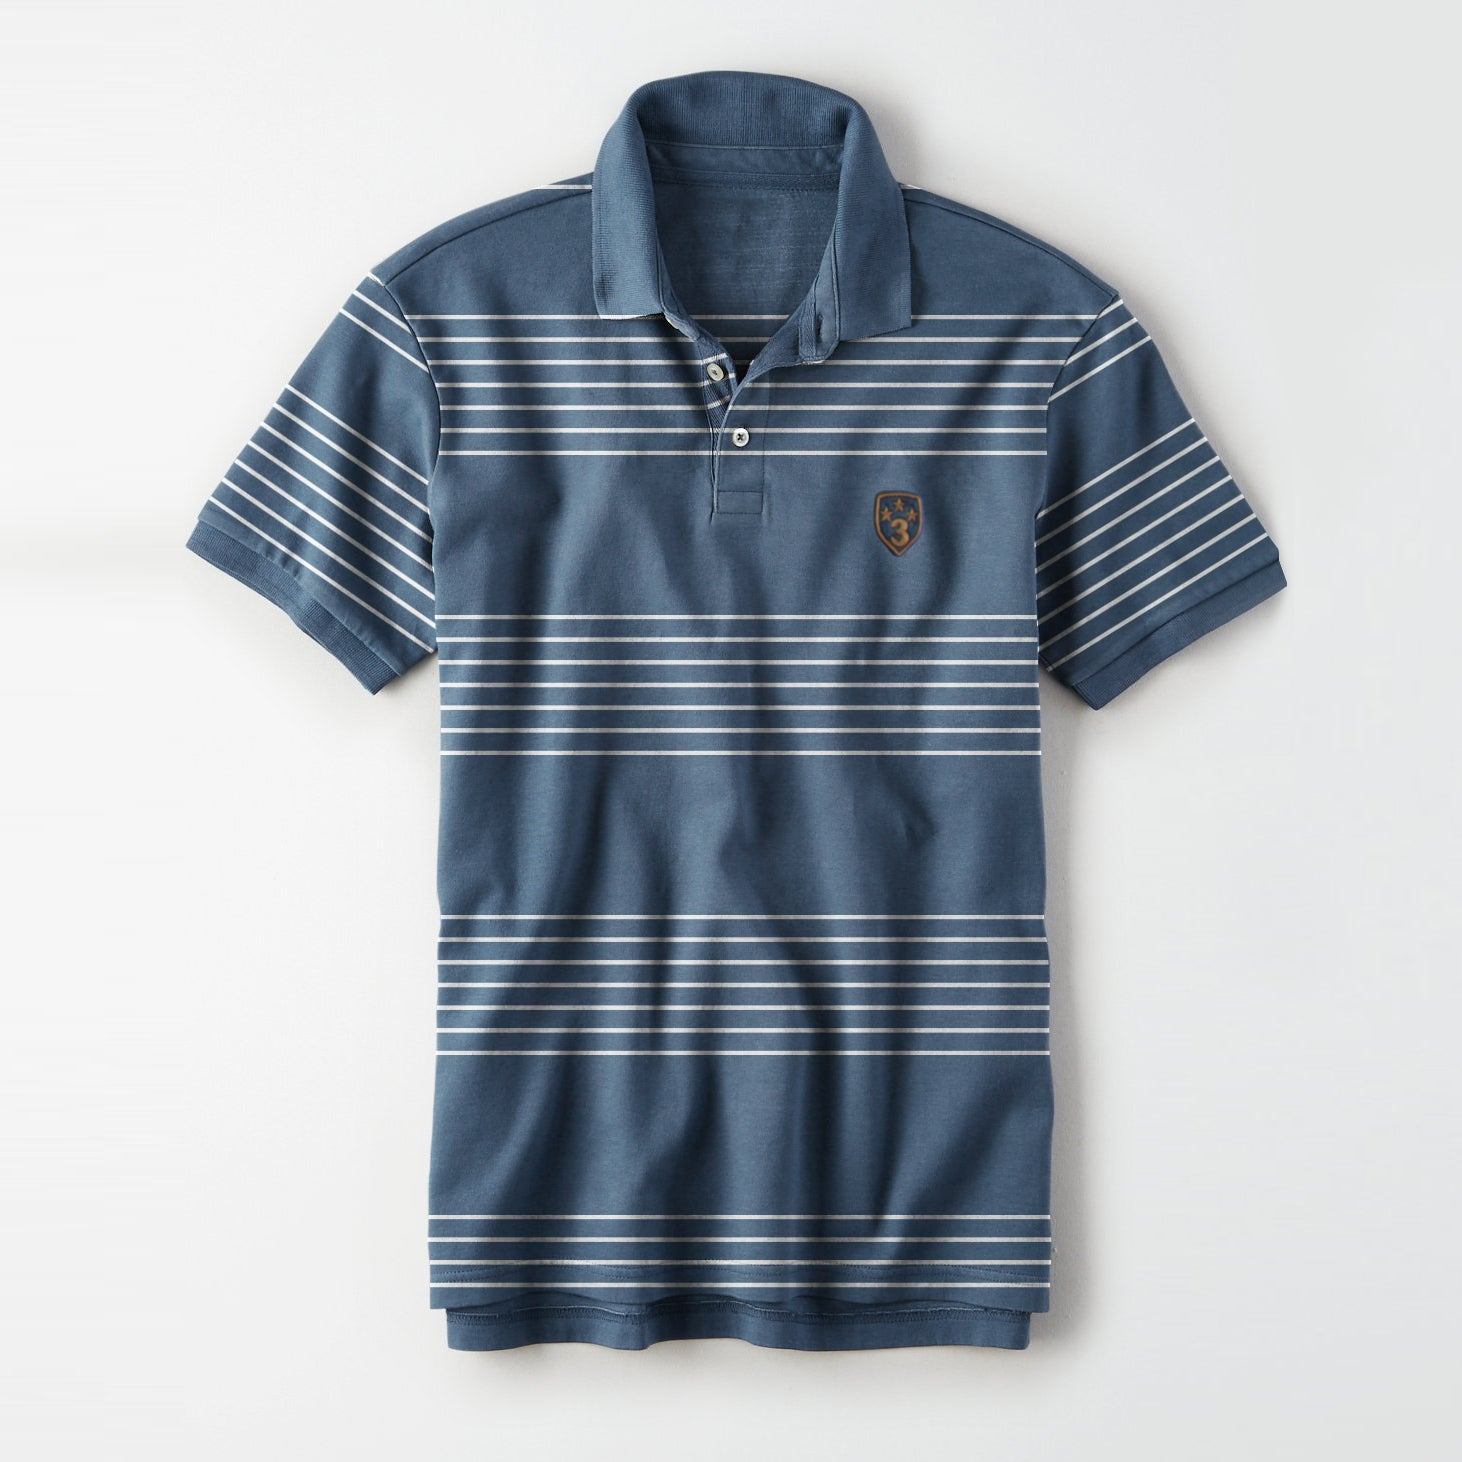 Banana Republic Short Sleeve P.Q Polo Shirt For Men-NA8082